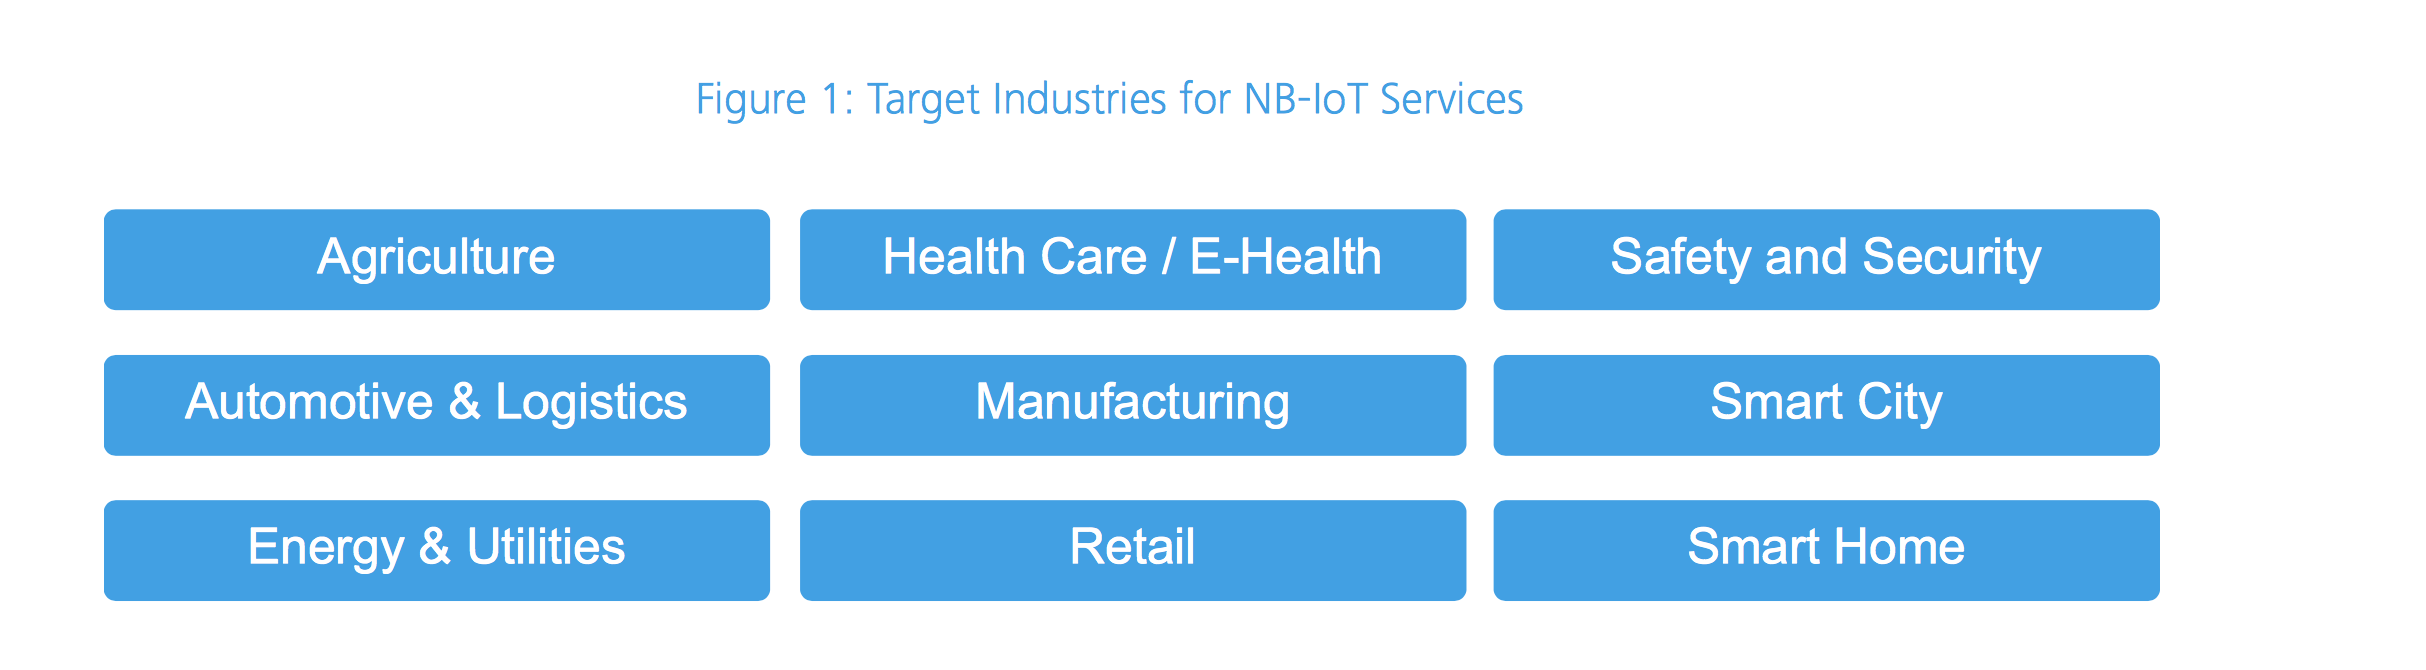 Target industry for NB-IOT